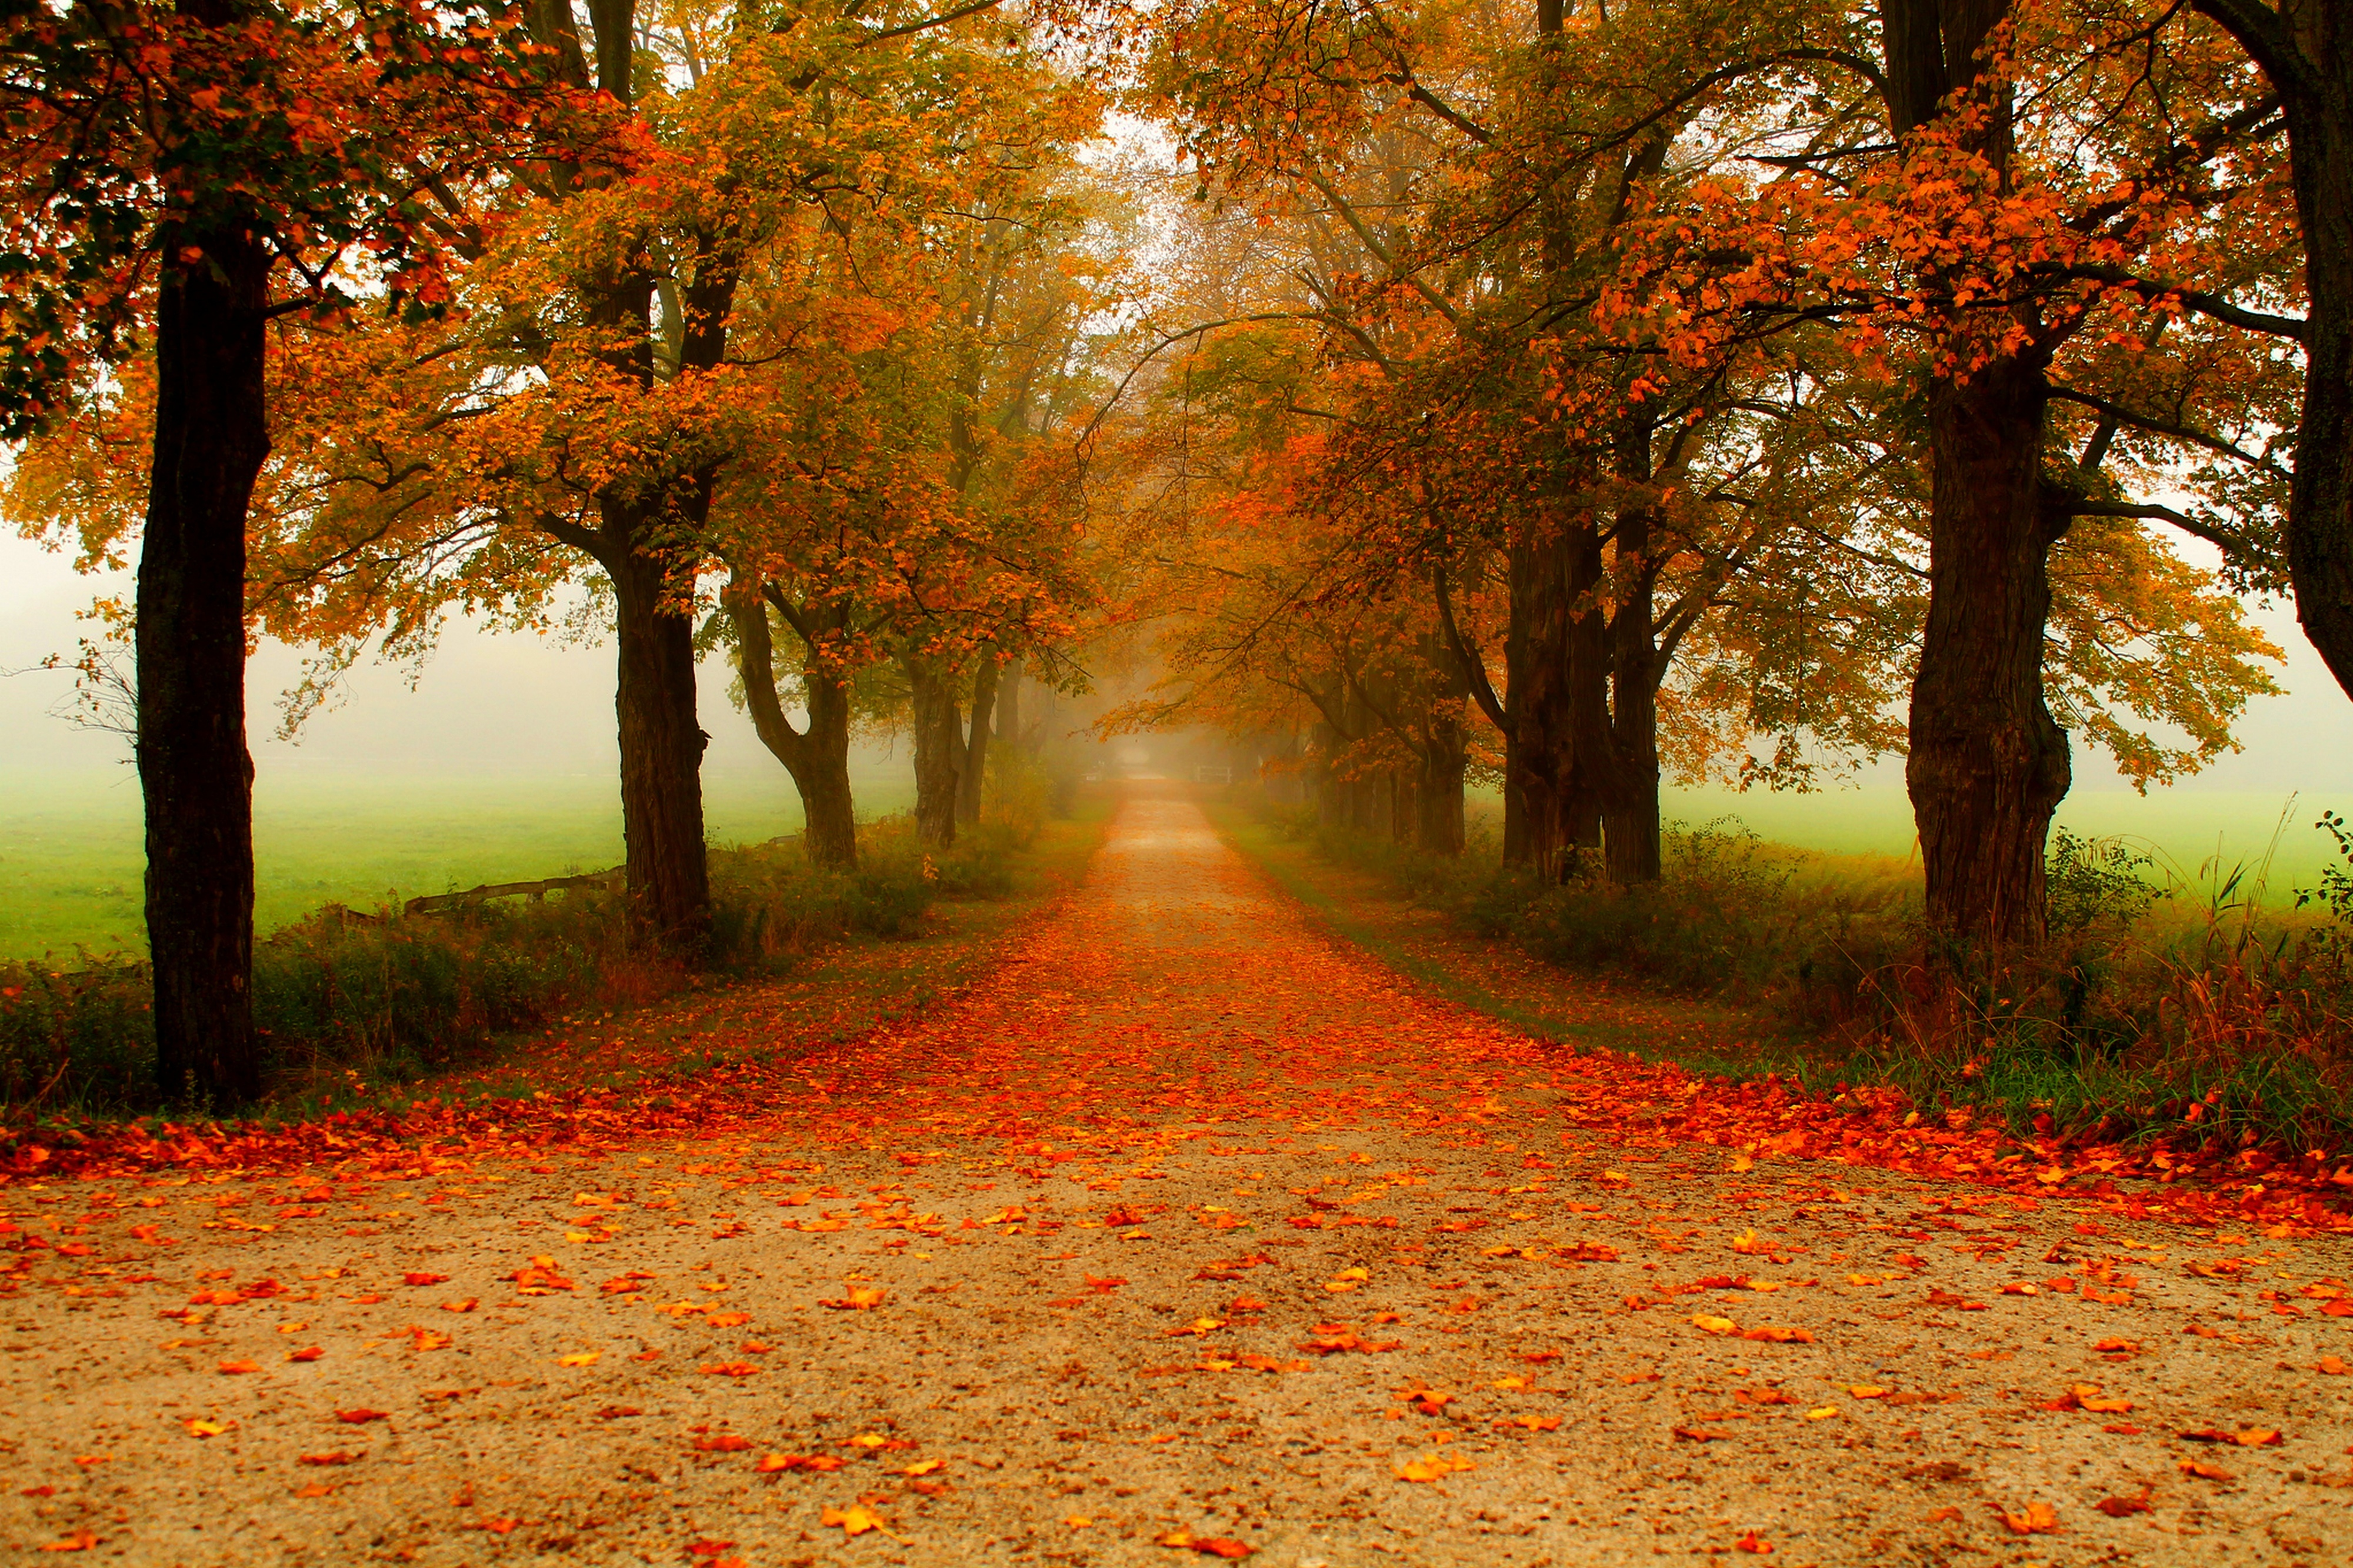 Wallpaper Images Of Fall Trees Lined Lake Autumn Path 4k Ultra Hd Wallpaper Background Image